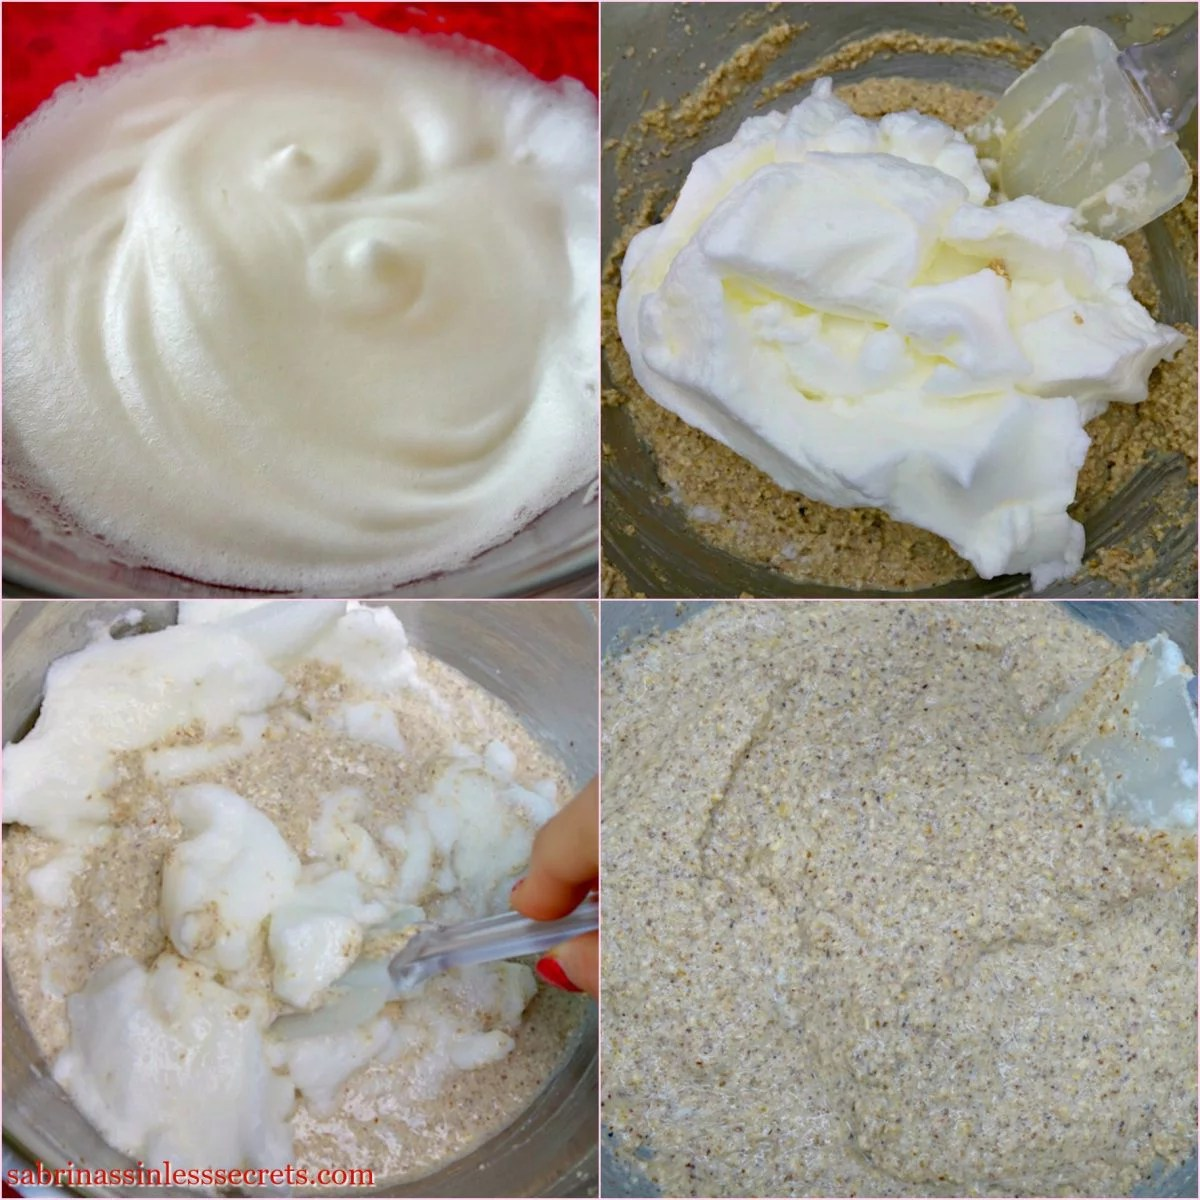 Whipped egg whites in a bowl being made and folded into homemade gluten-free greek yogurt oat pancake batter